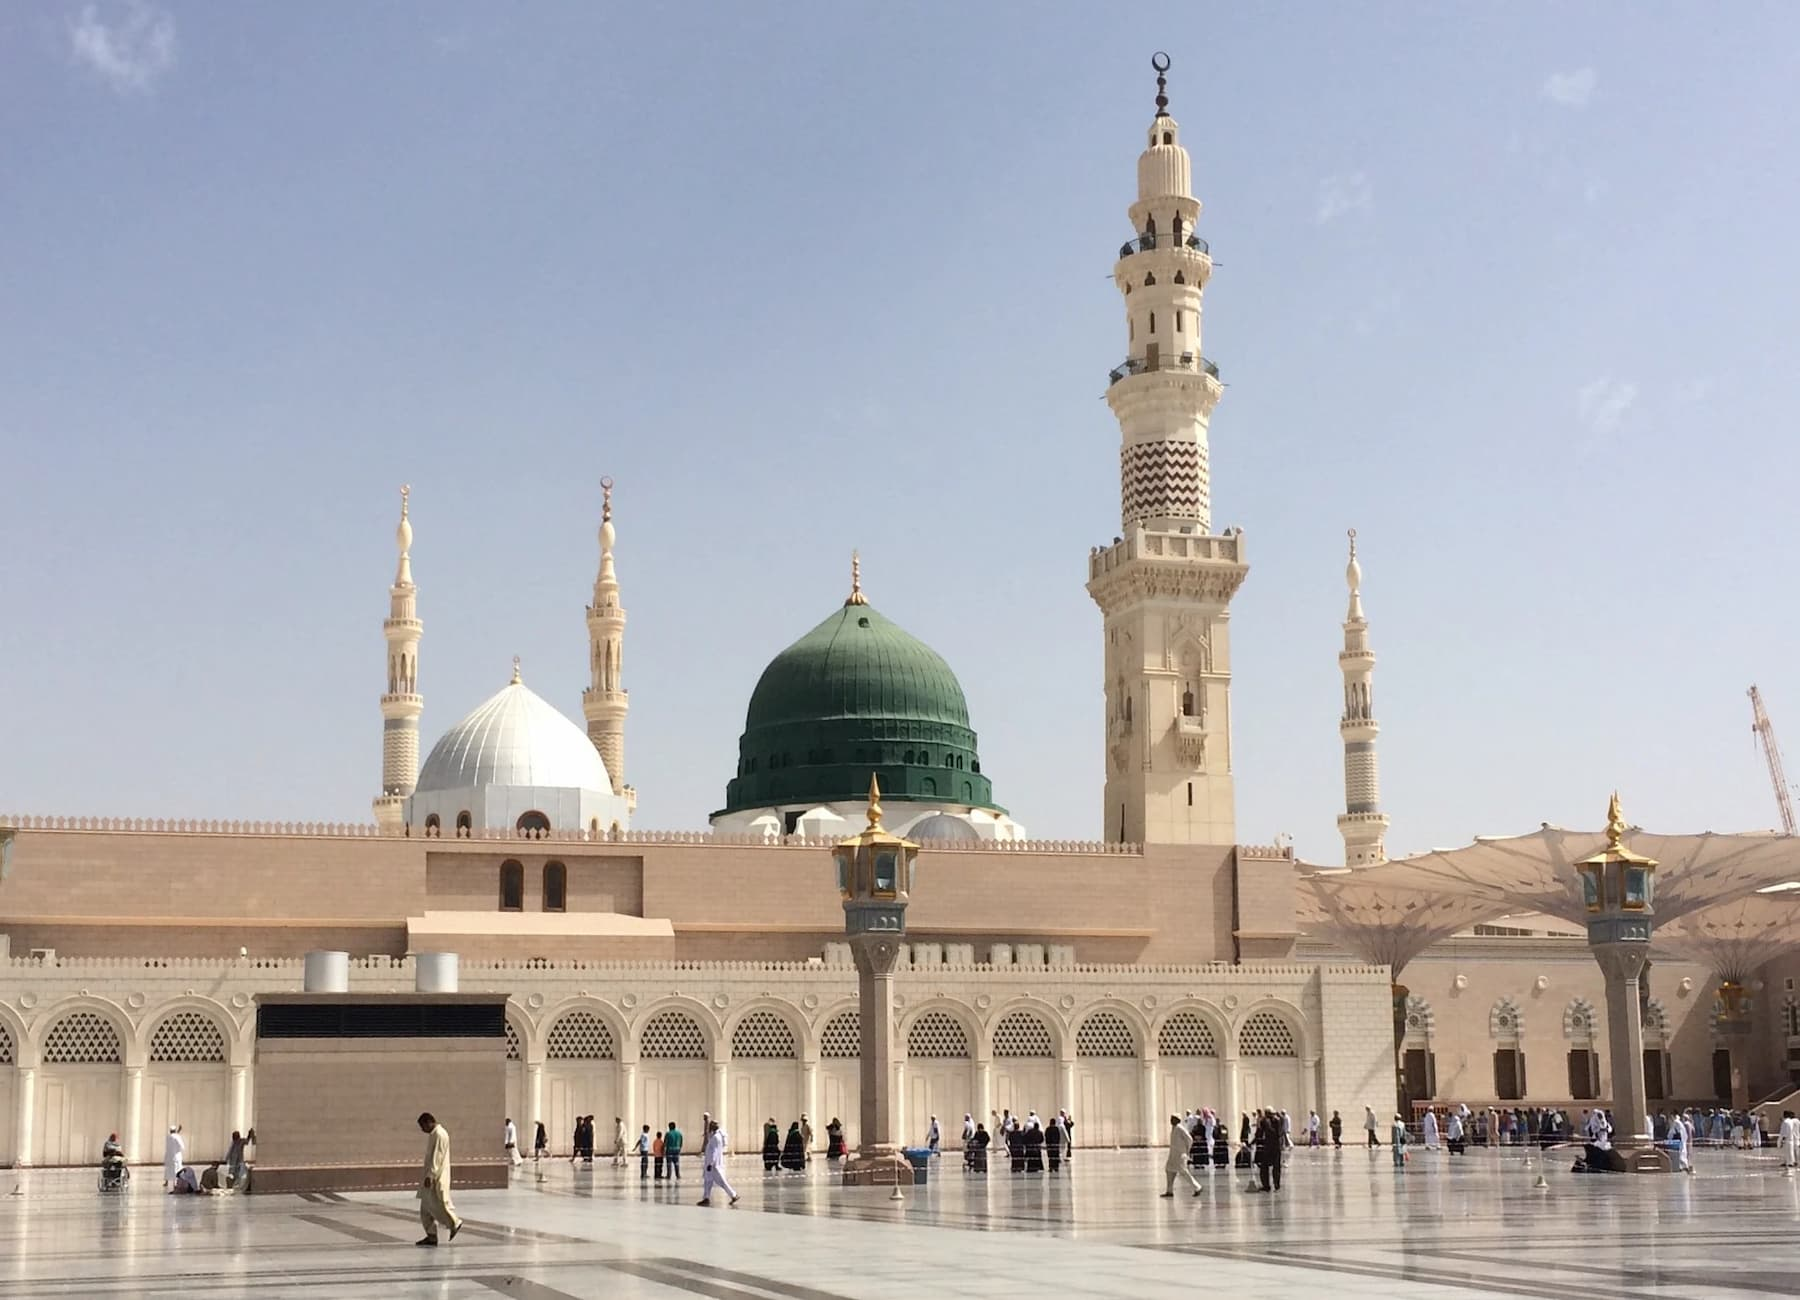 The Mosque of Our Beloved, Our Prophet - Allah's prayers and peace upon him and his family and companions!